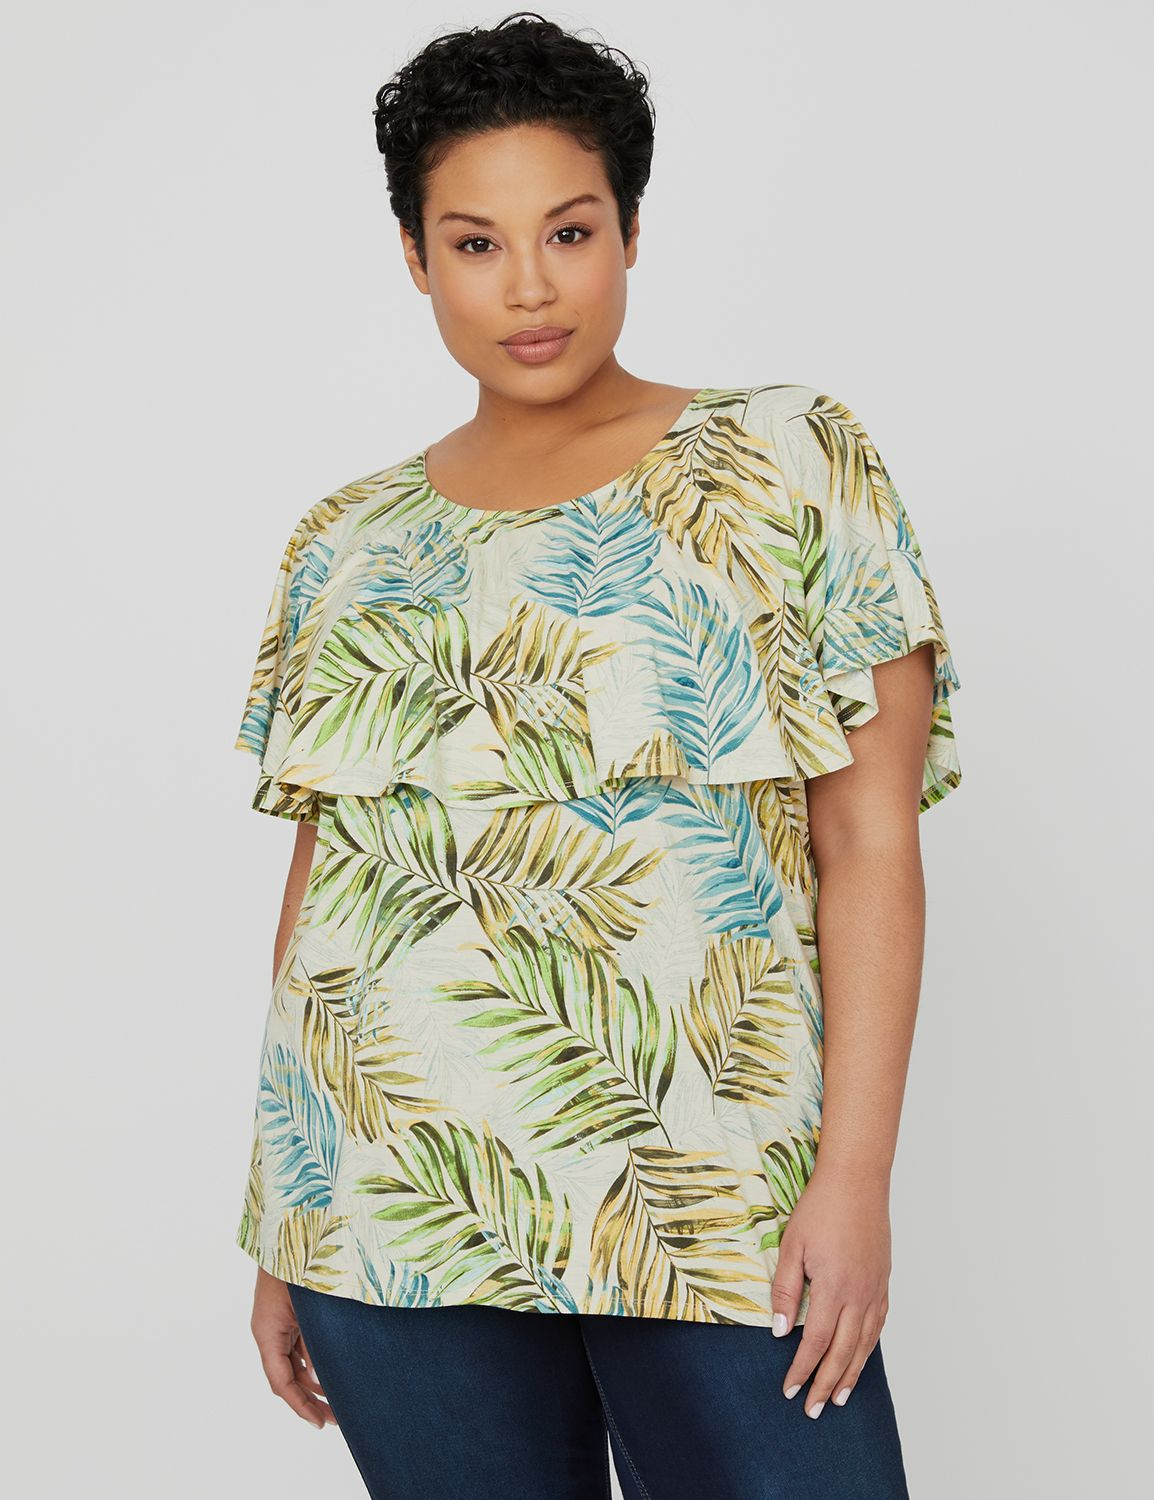 Tropical Flounce Top 1090663 FLOUNCE TROPICAL PRINT MP-300105136